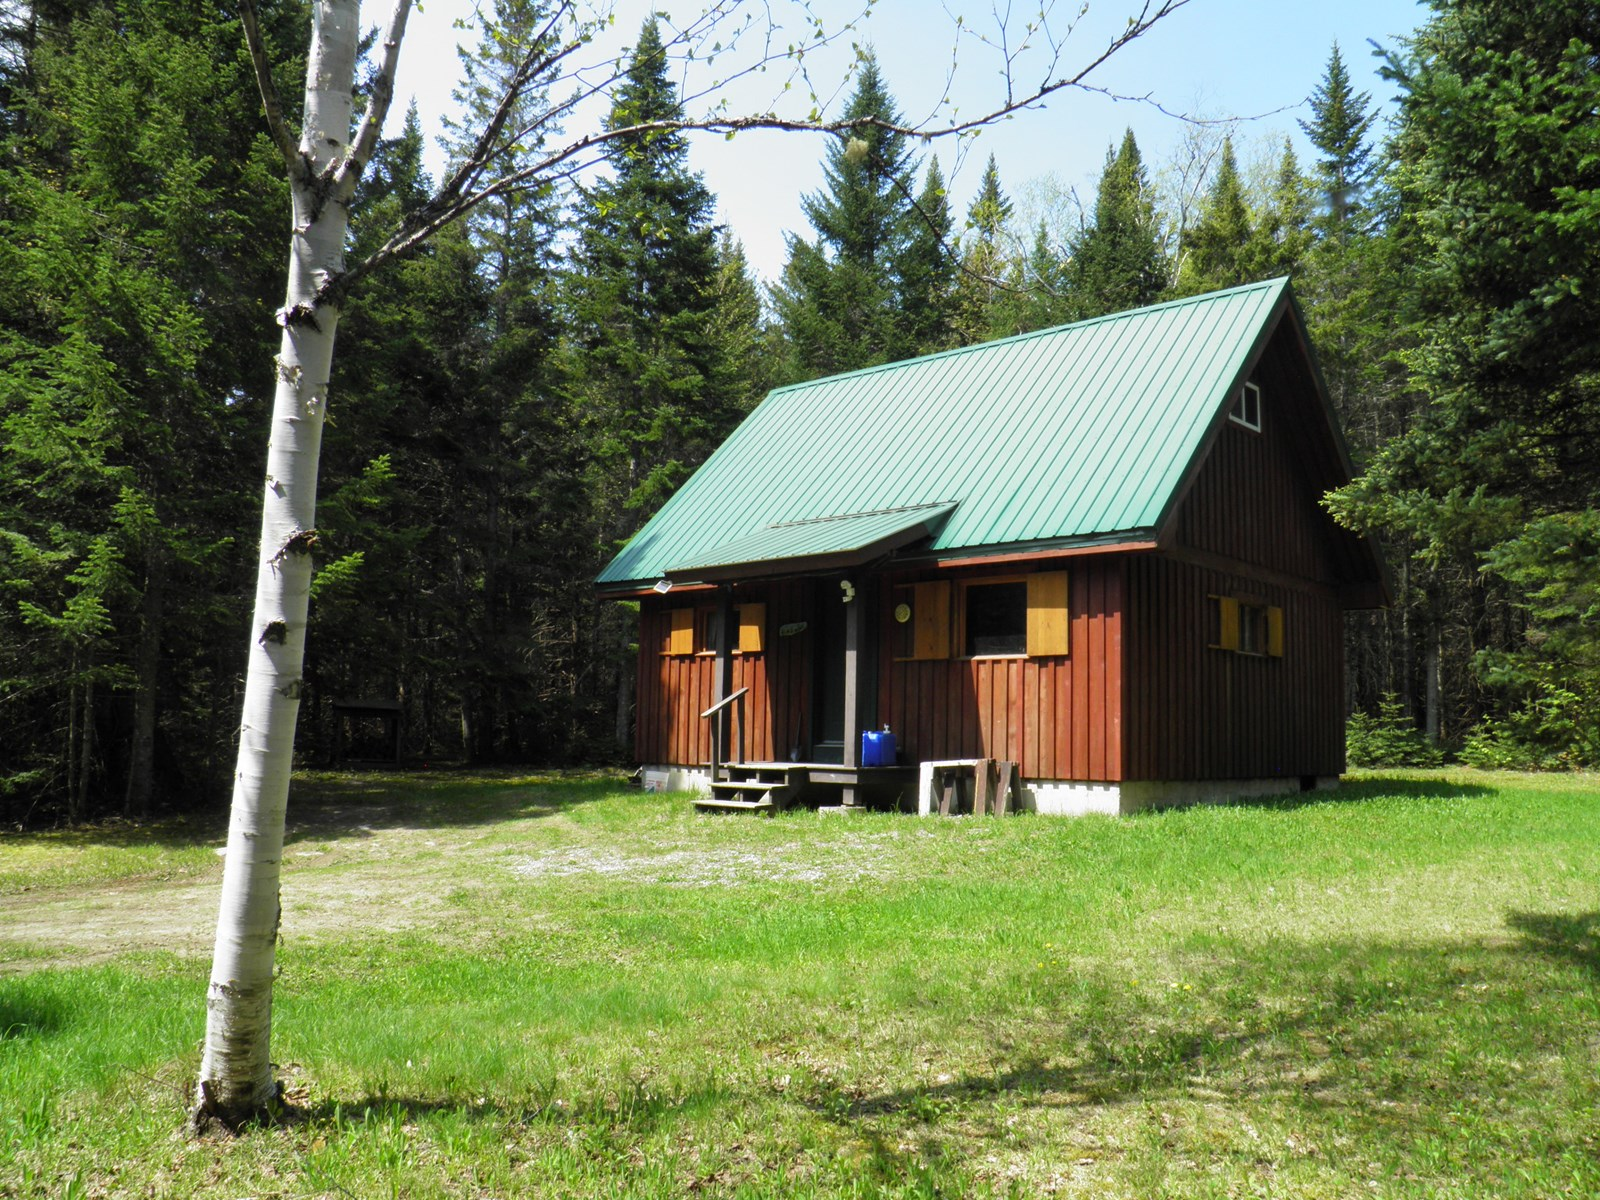 Newly Constructed Recreational Camp For Sale in Maine